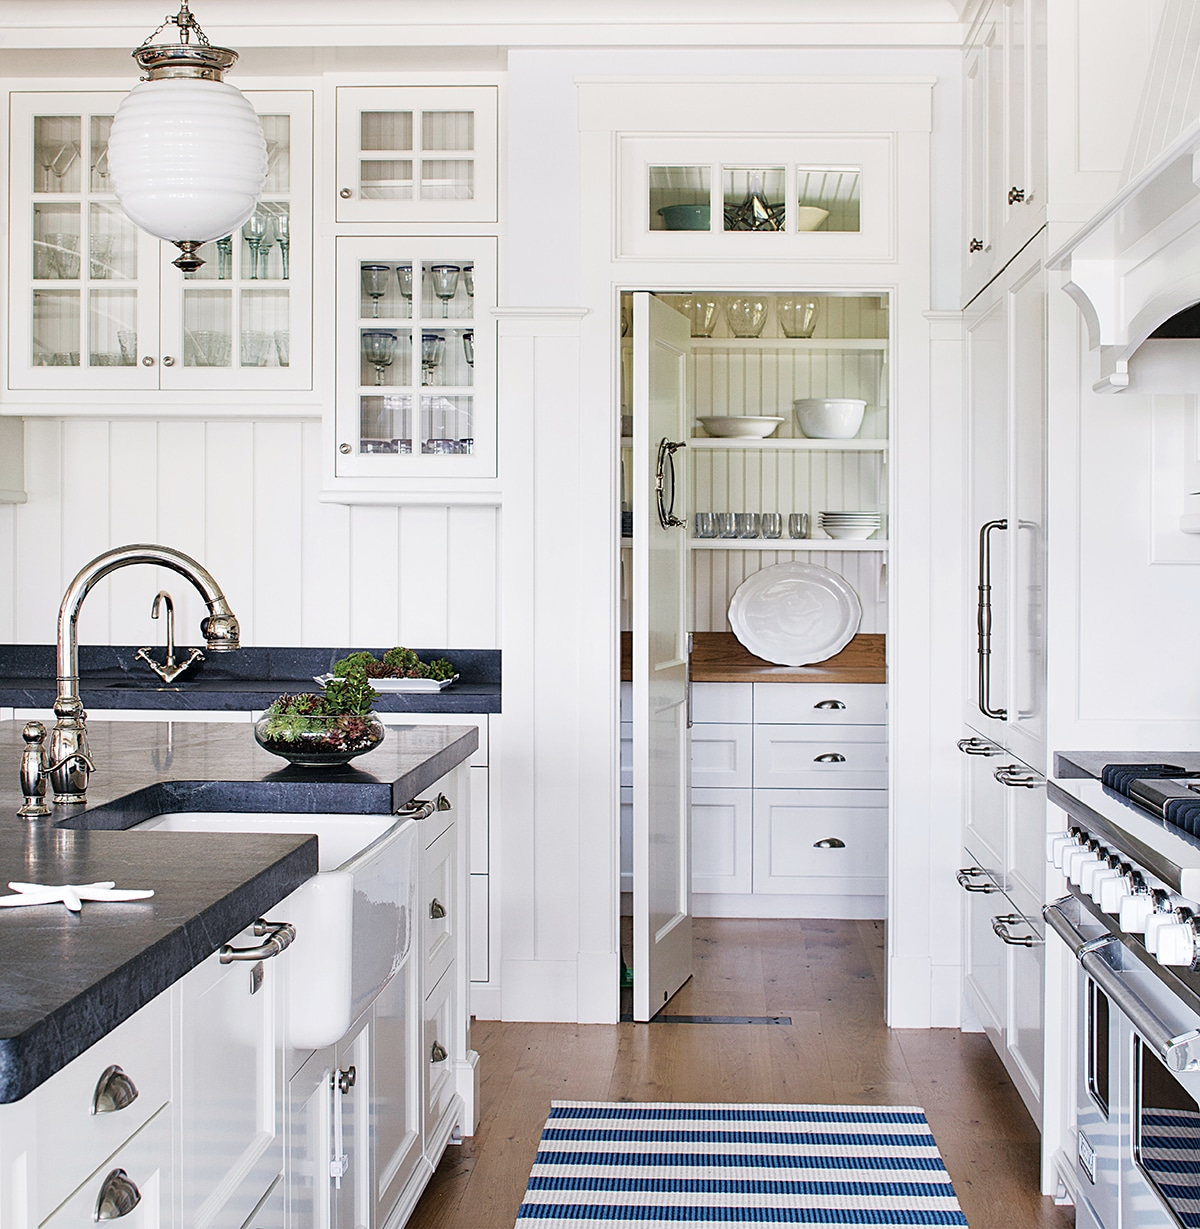 kitchen pantry cabinet ikea chalkboard in where do you store your dishes? - the inspired room